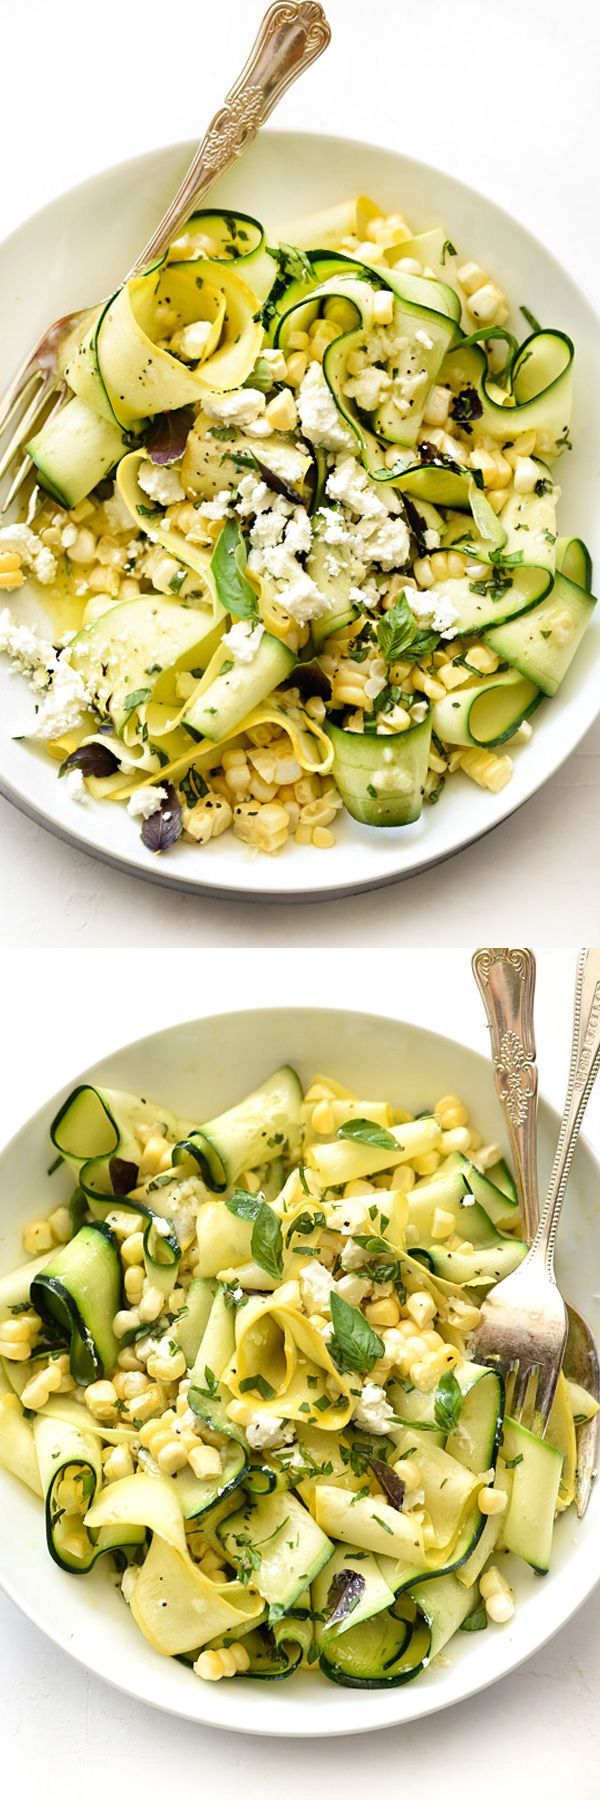 Raw zucchini and corn make this no-cook salad ready in just 5 minutes and so, so good | foodiecrush.com